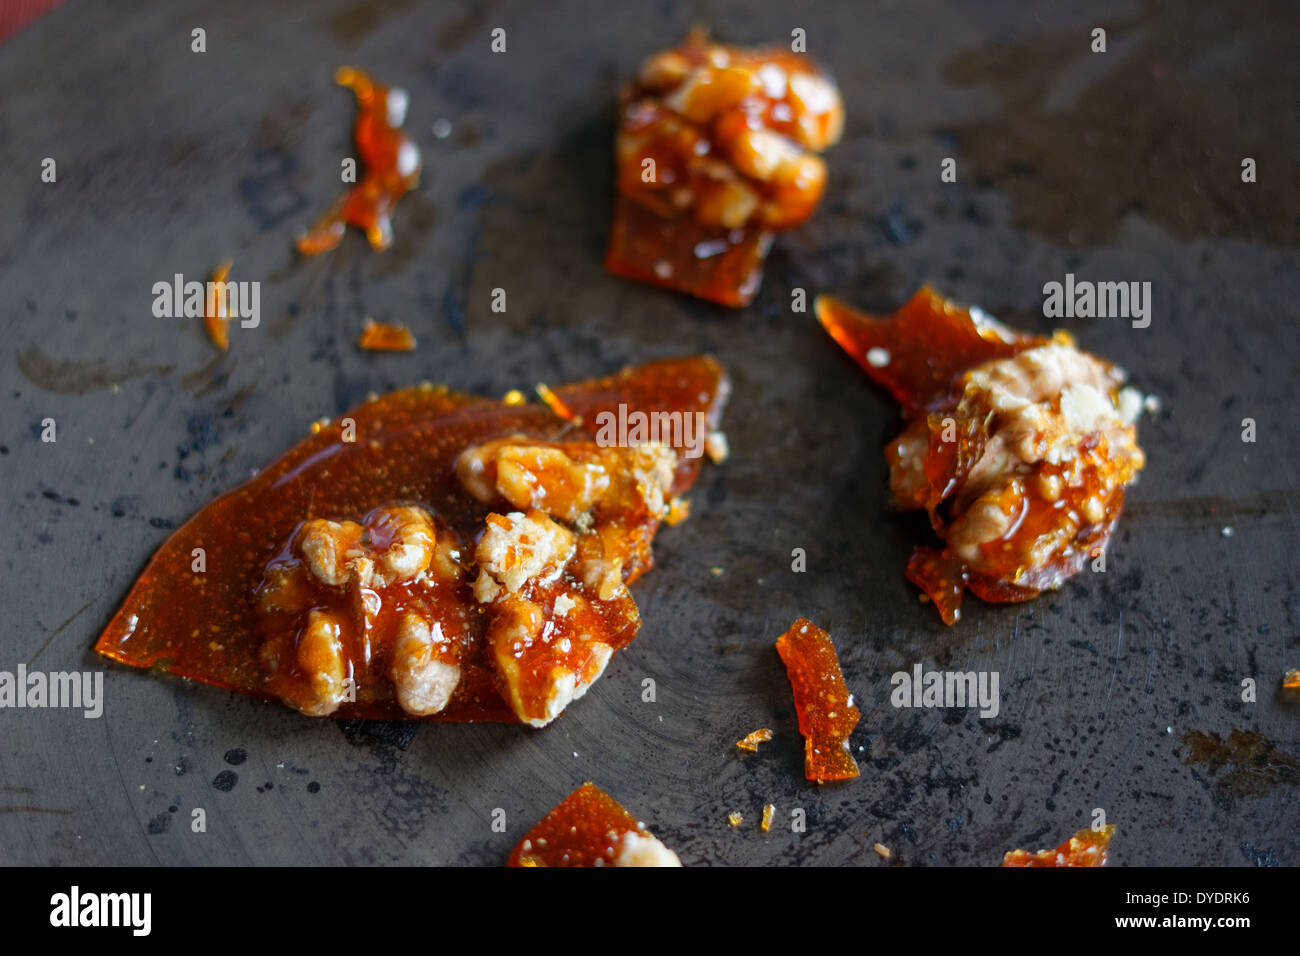 Nut brittle or nut caramel - Stock Image